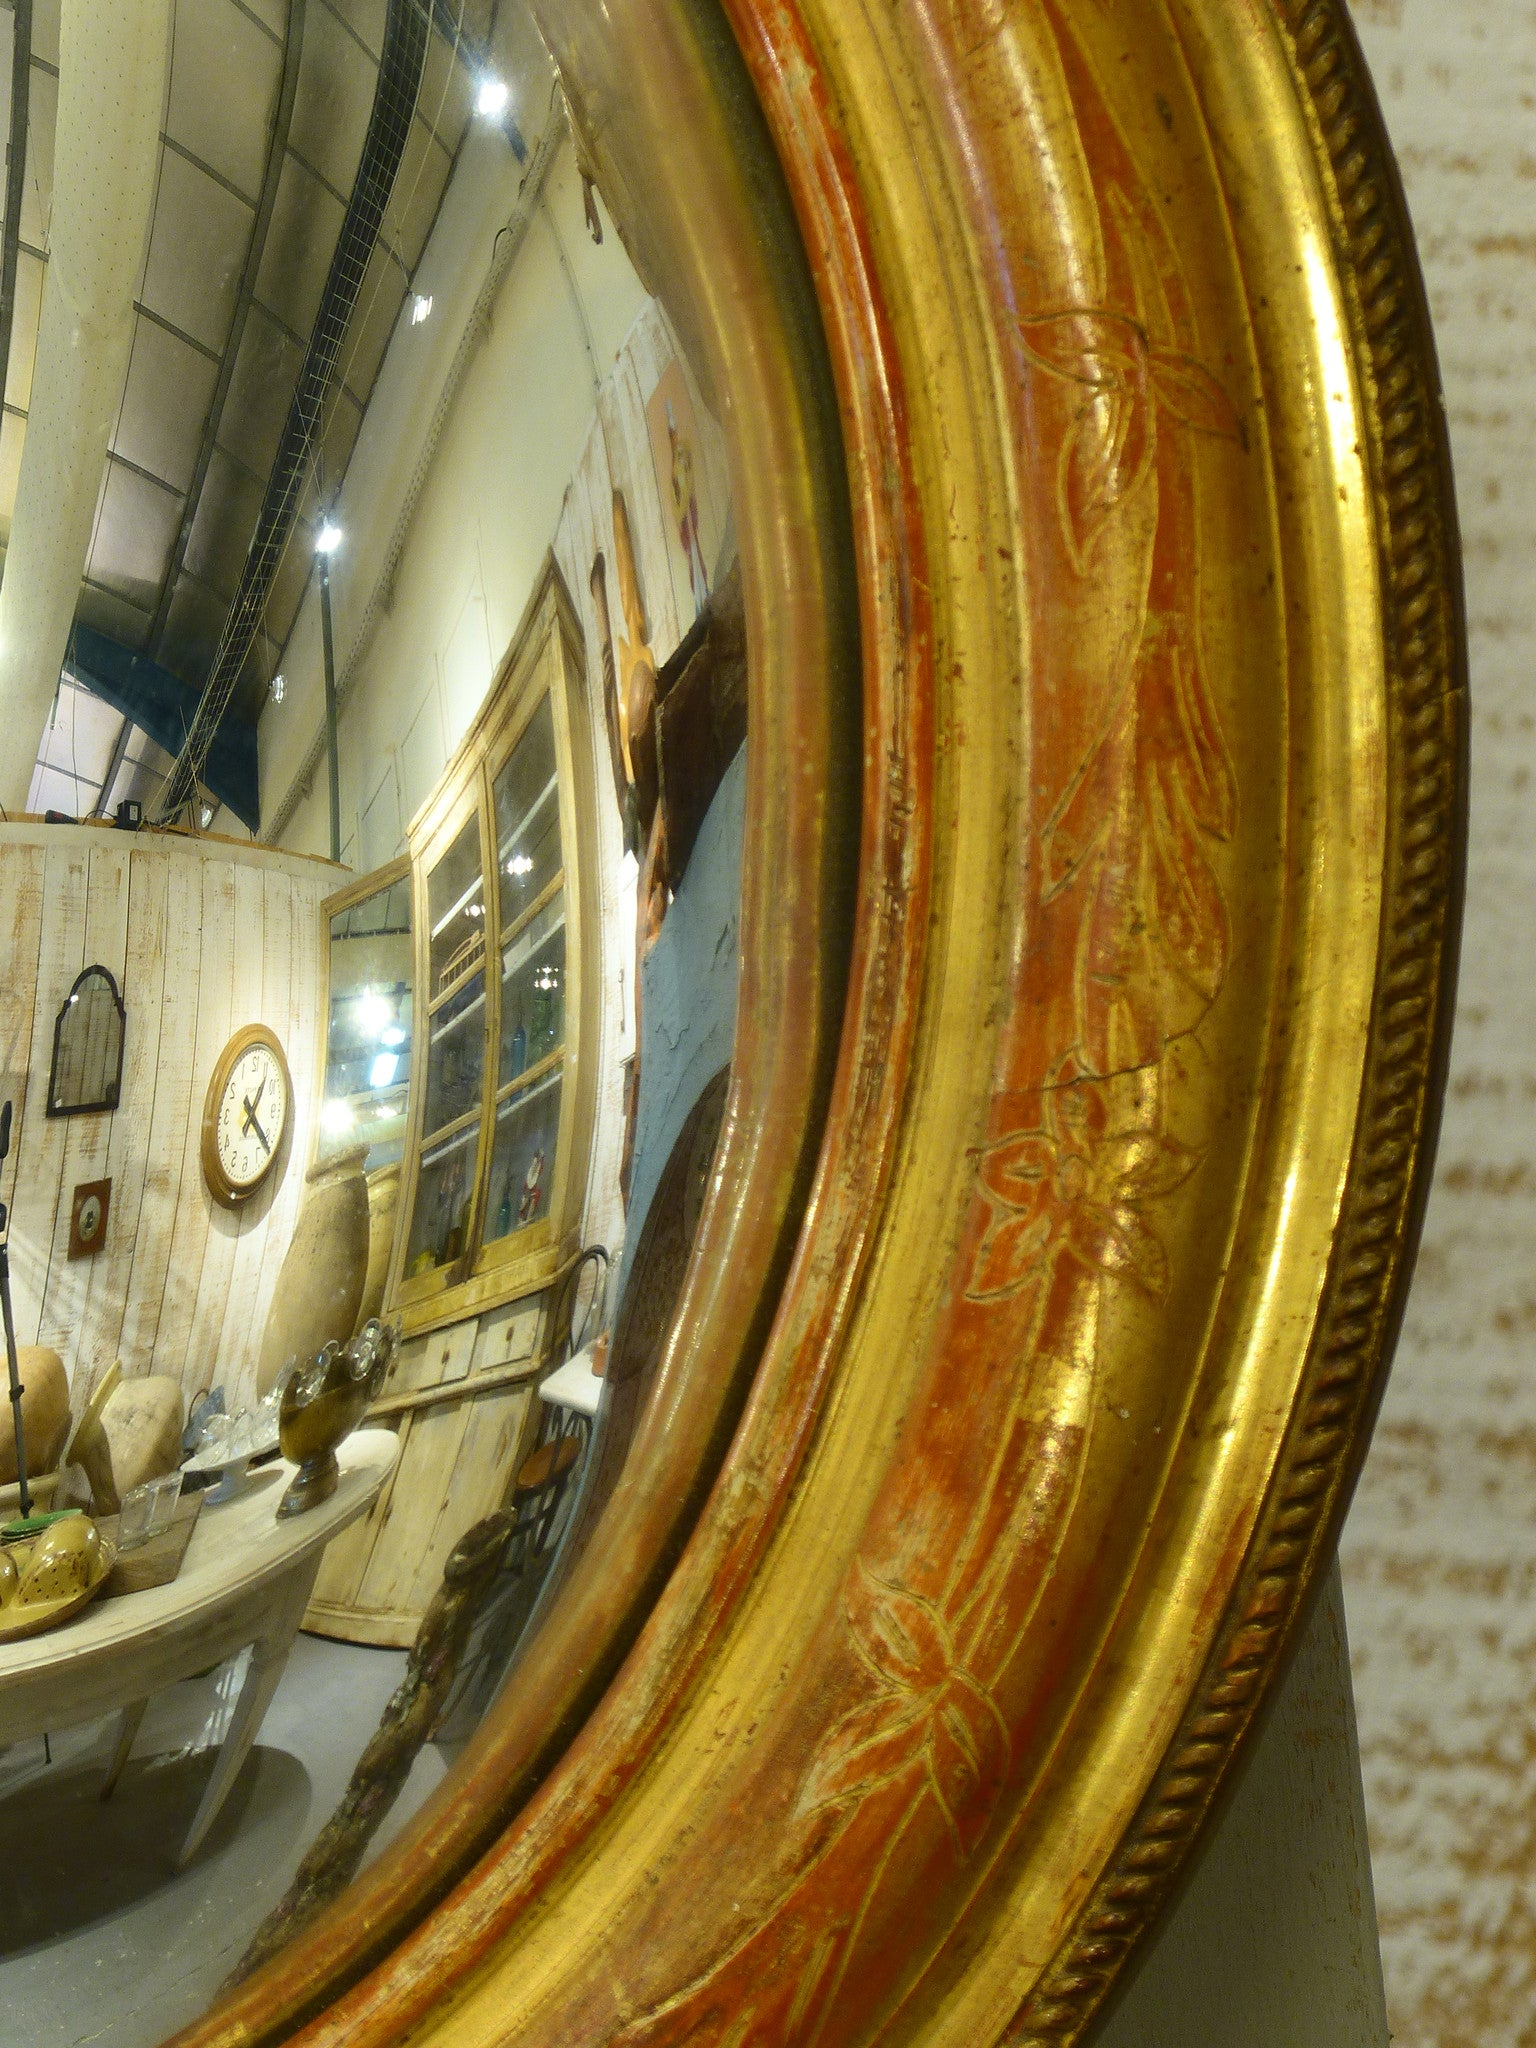 Louis Philippe convex butlers mirror with original patina